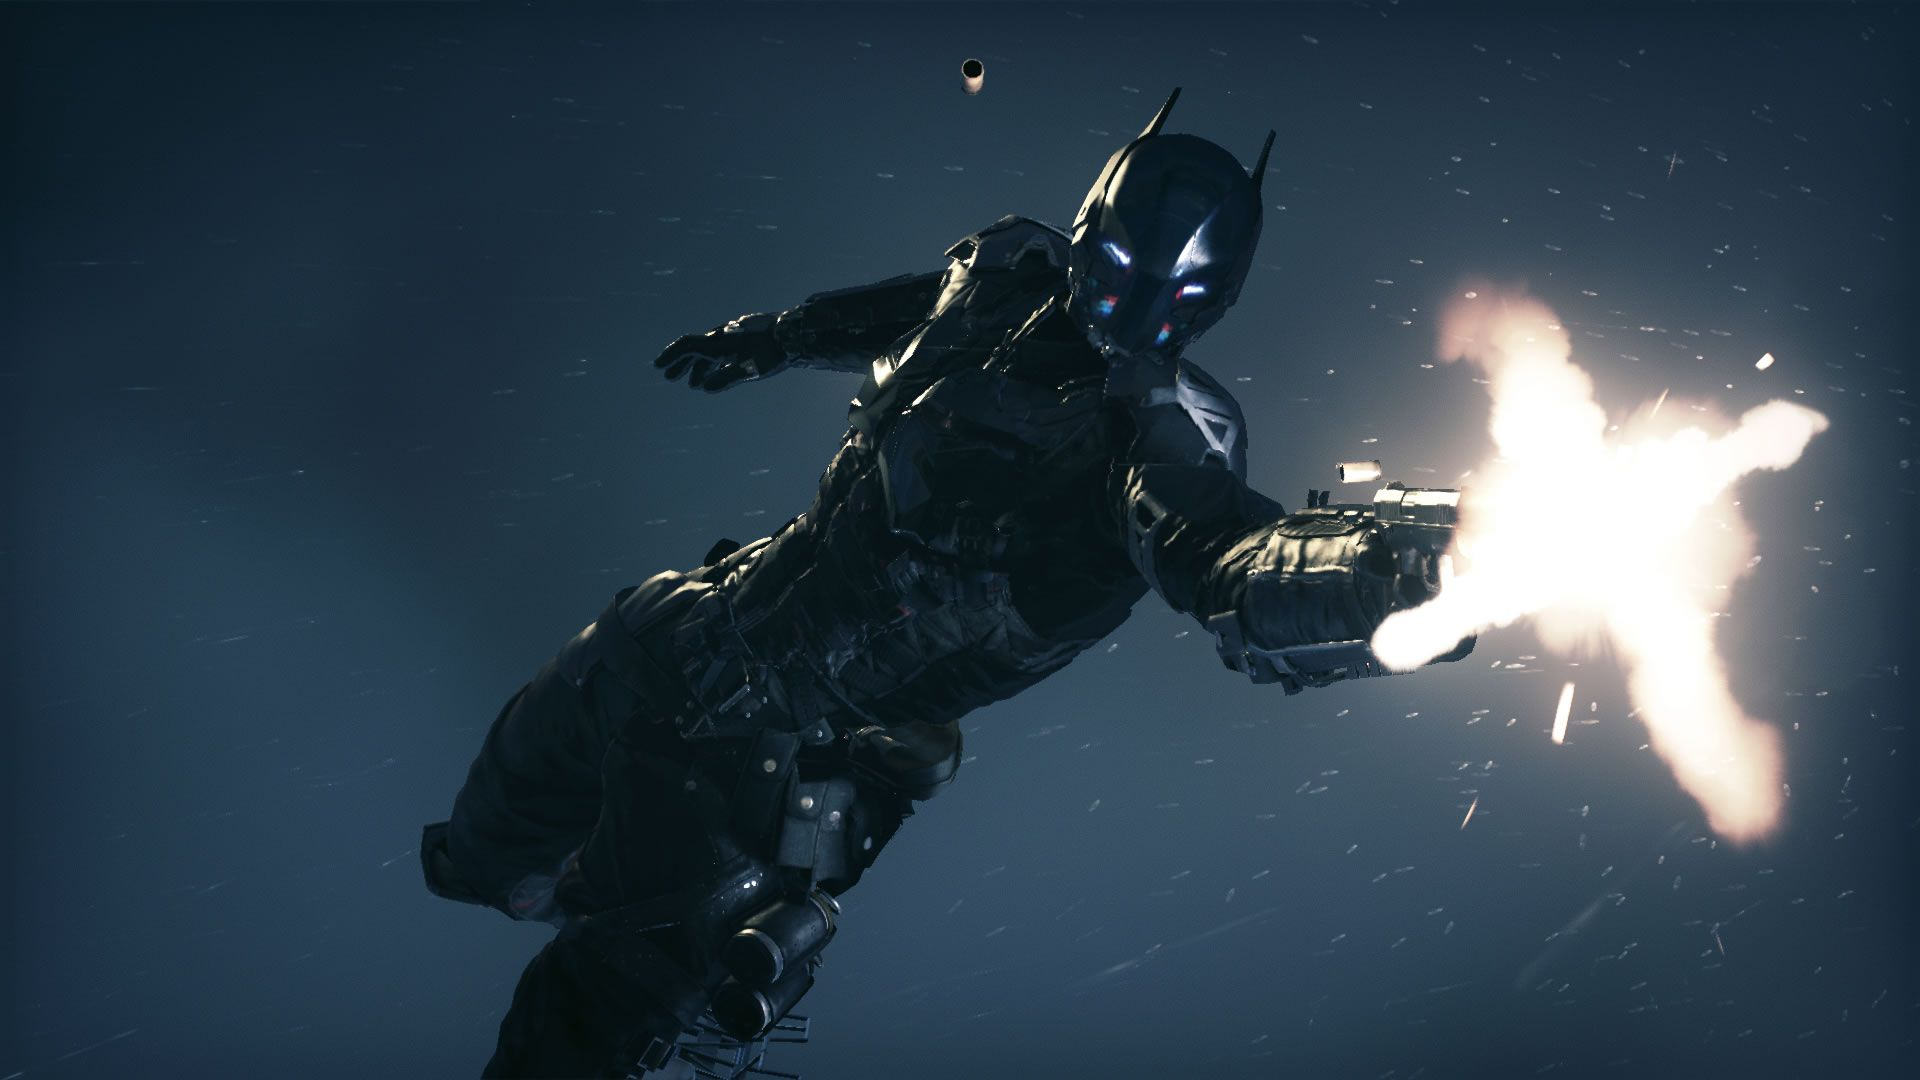 http://cdn.collider.com/wp-content/uploads/batman-arkham-knight.jpg